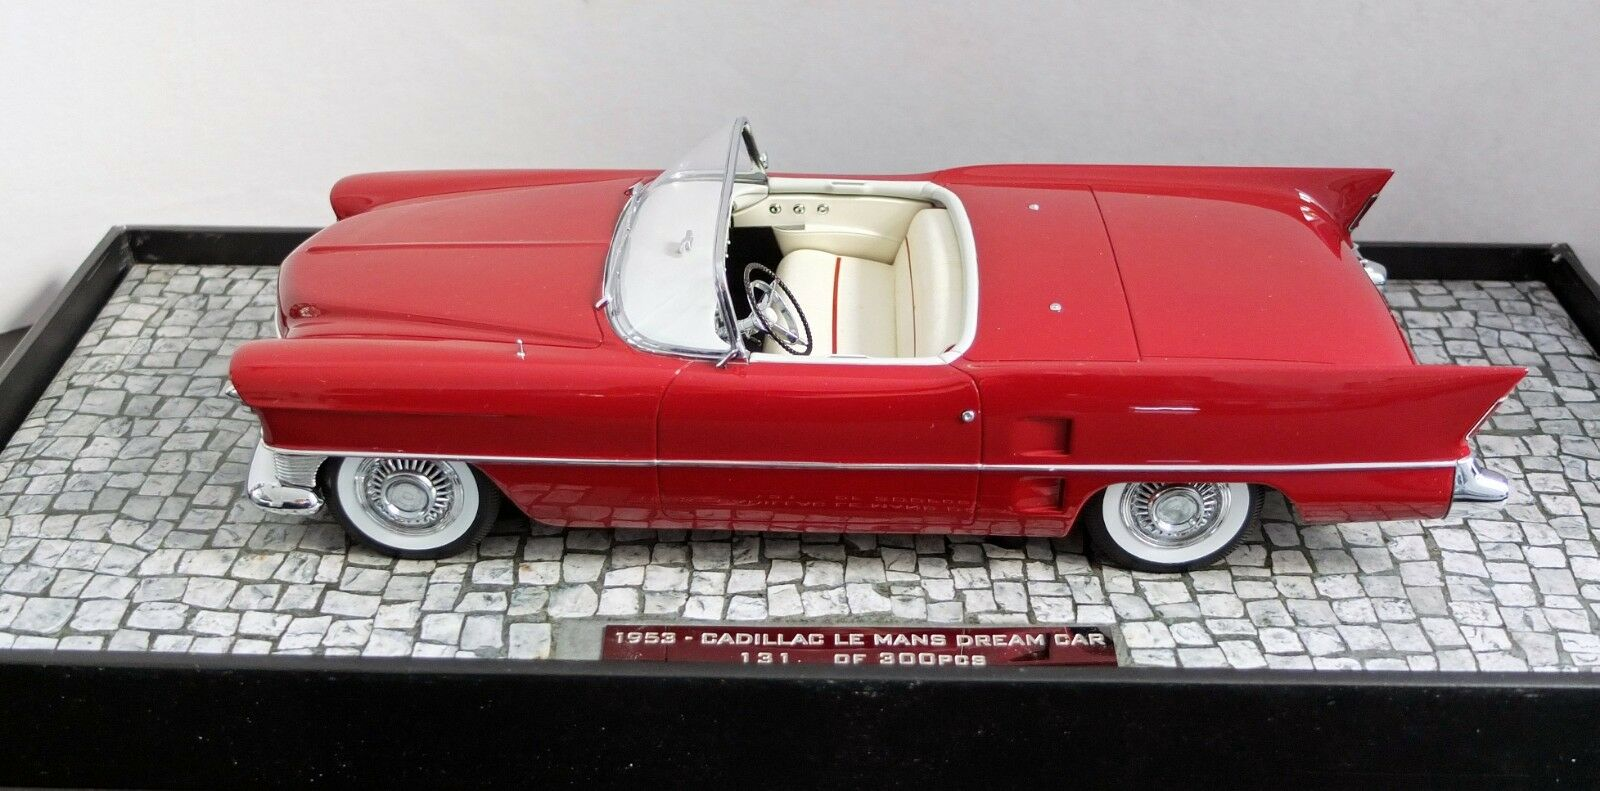 Minichamps Minichamps Minichamps 1:18 resin 1953 CADILLAC LE MANS TYPE NR 107148231 First Class Edition | Fabrication Habile  7efebe